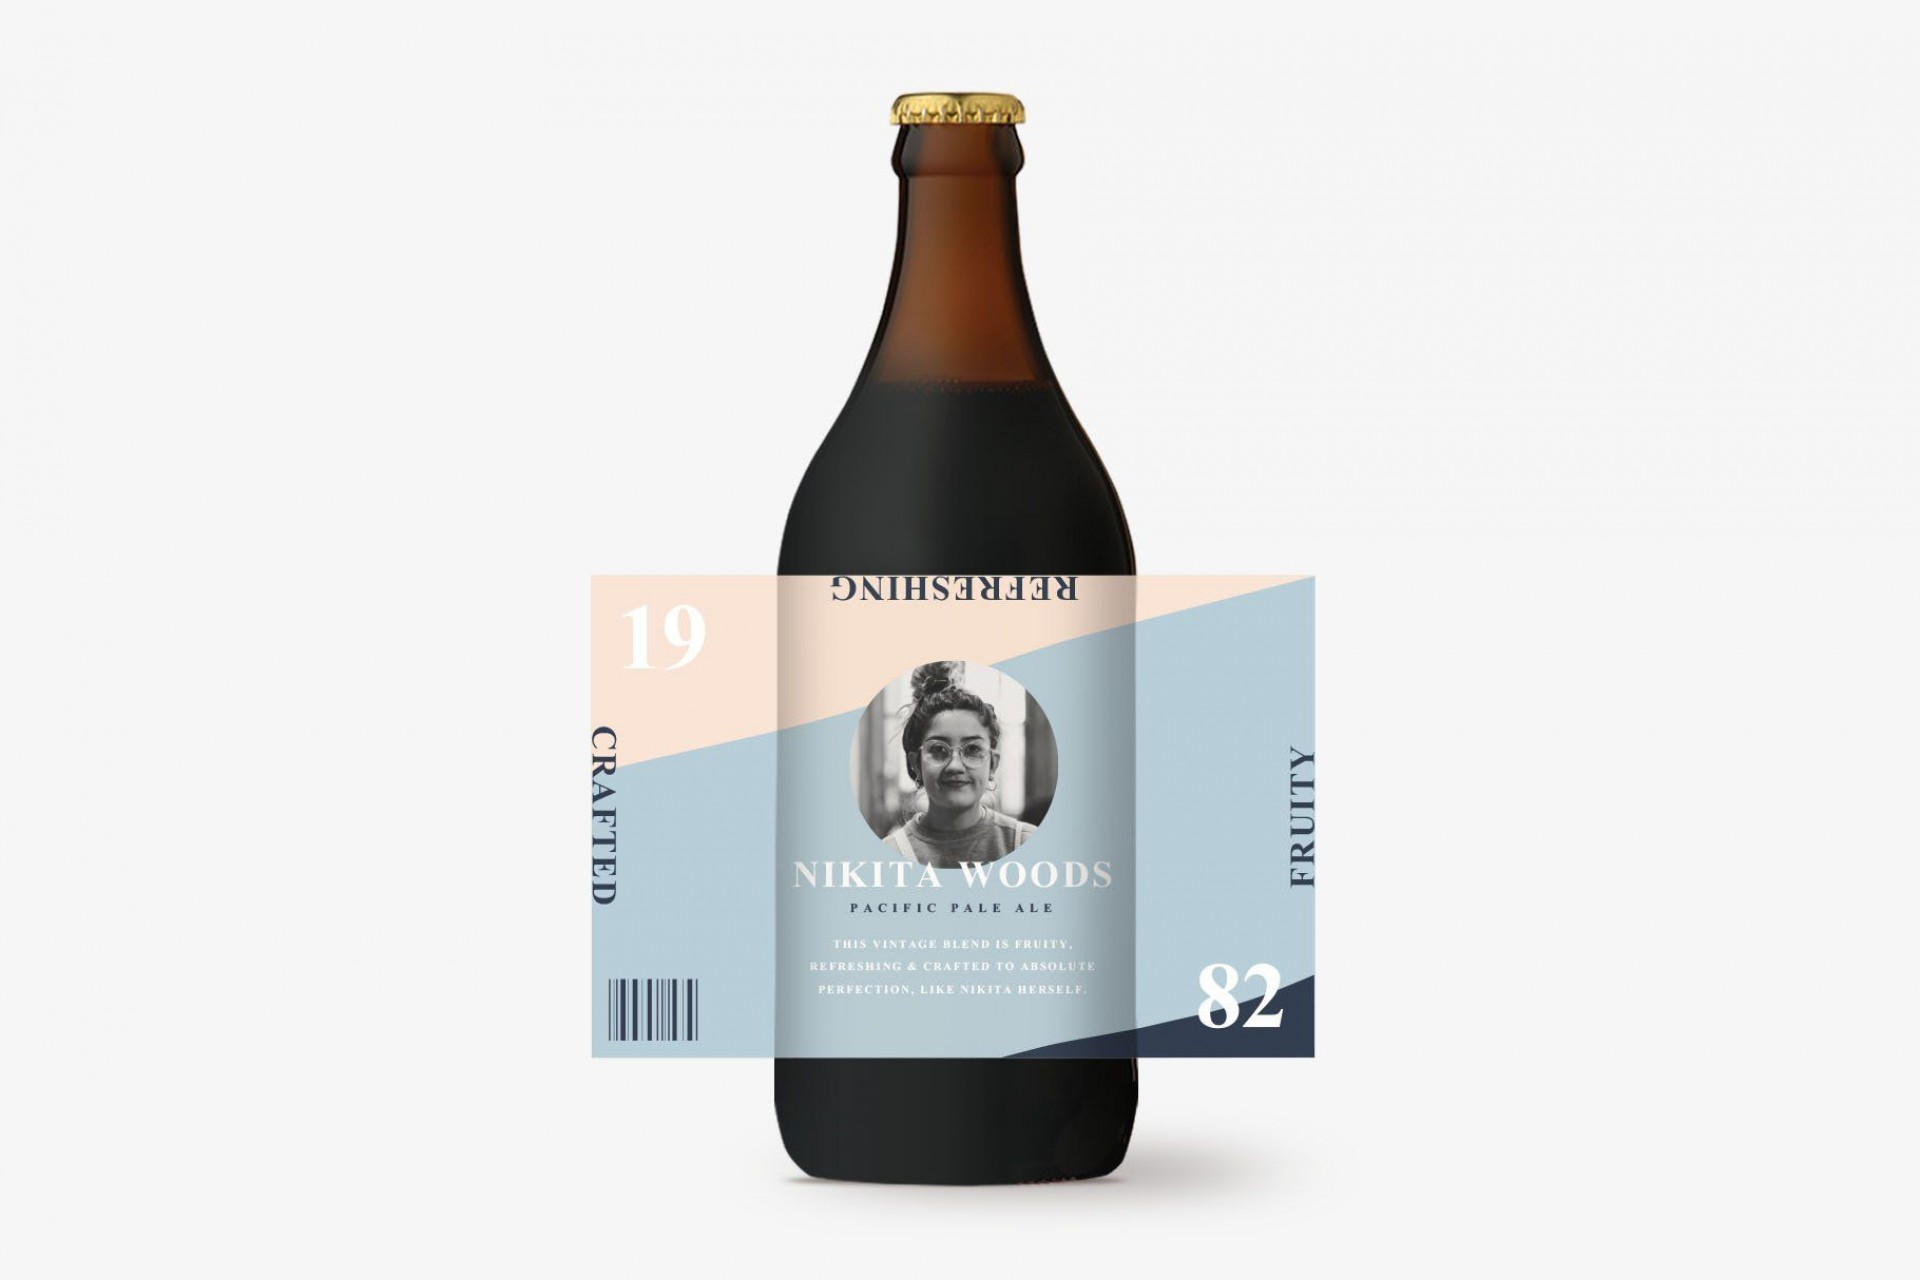 006 Shocking Microsoft Word Beer Label Template High Definition  Bottle1920